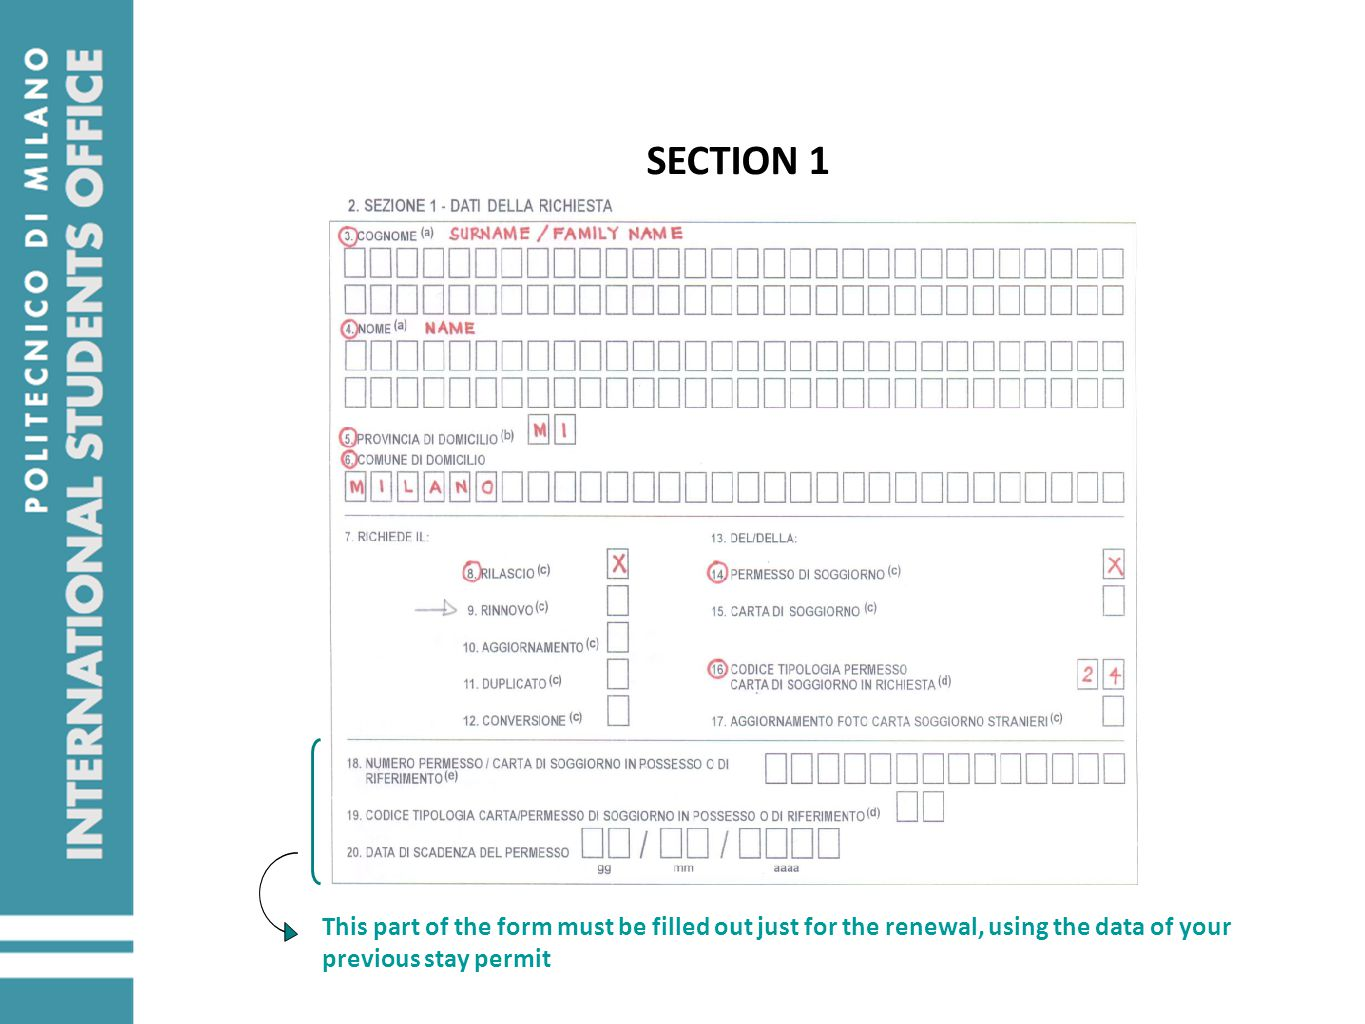 SECTION 1 This part of the form must be filled out just for the renewal, using the data of your previous stay permit